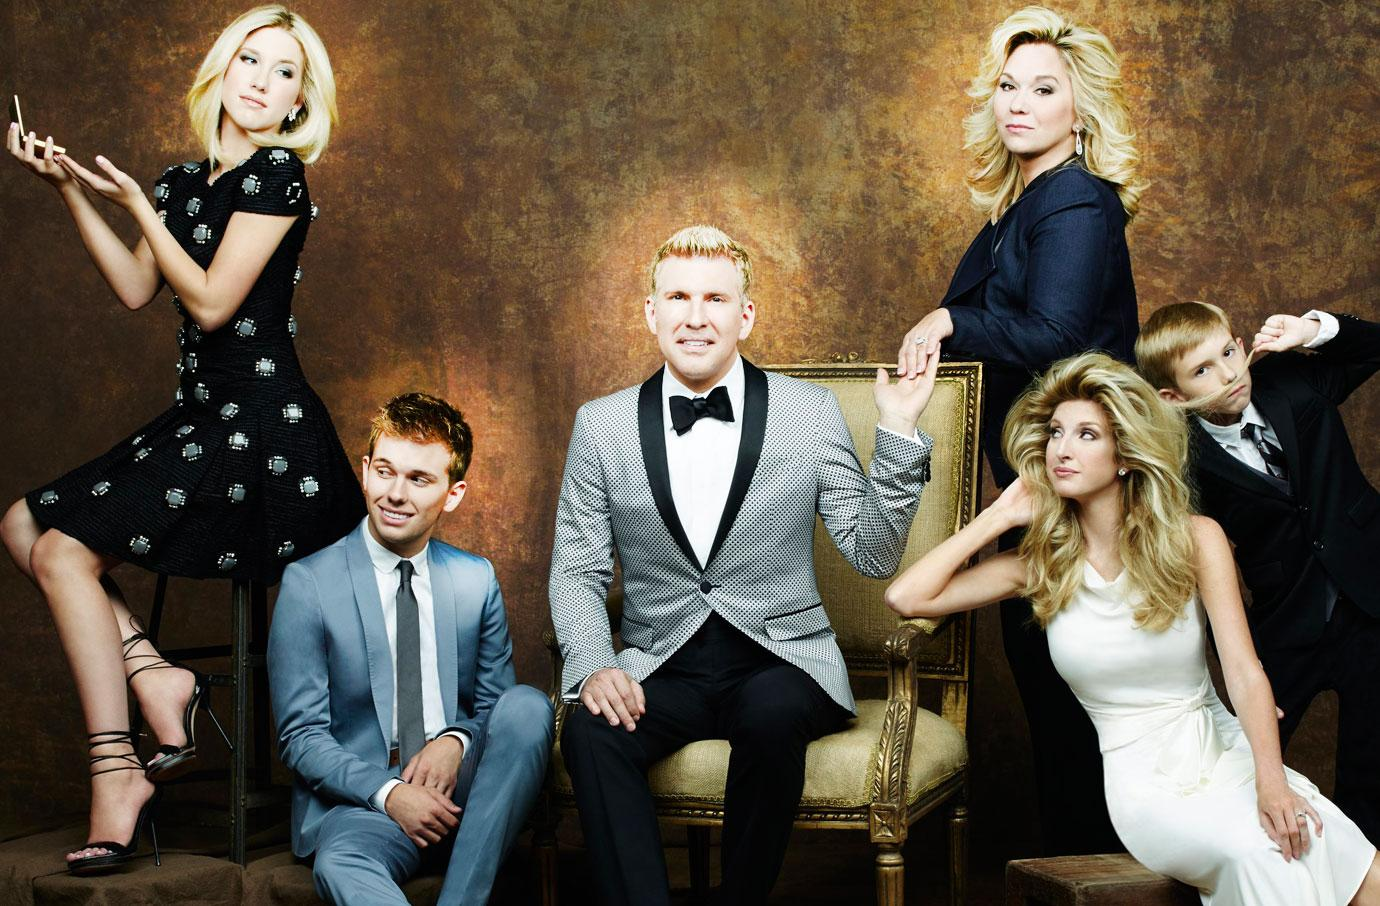 Todd Julie Chrisley Fake Bossy Kids Family